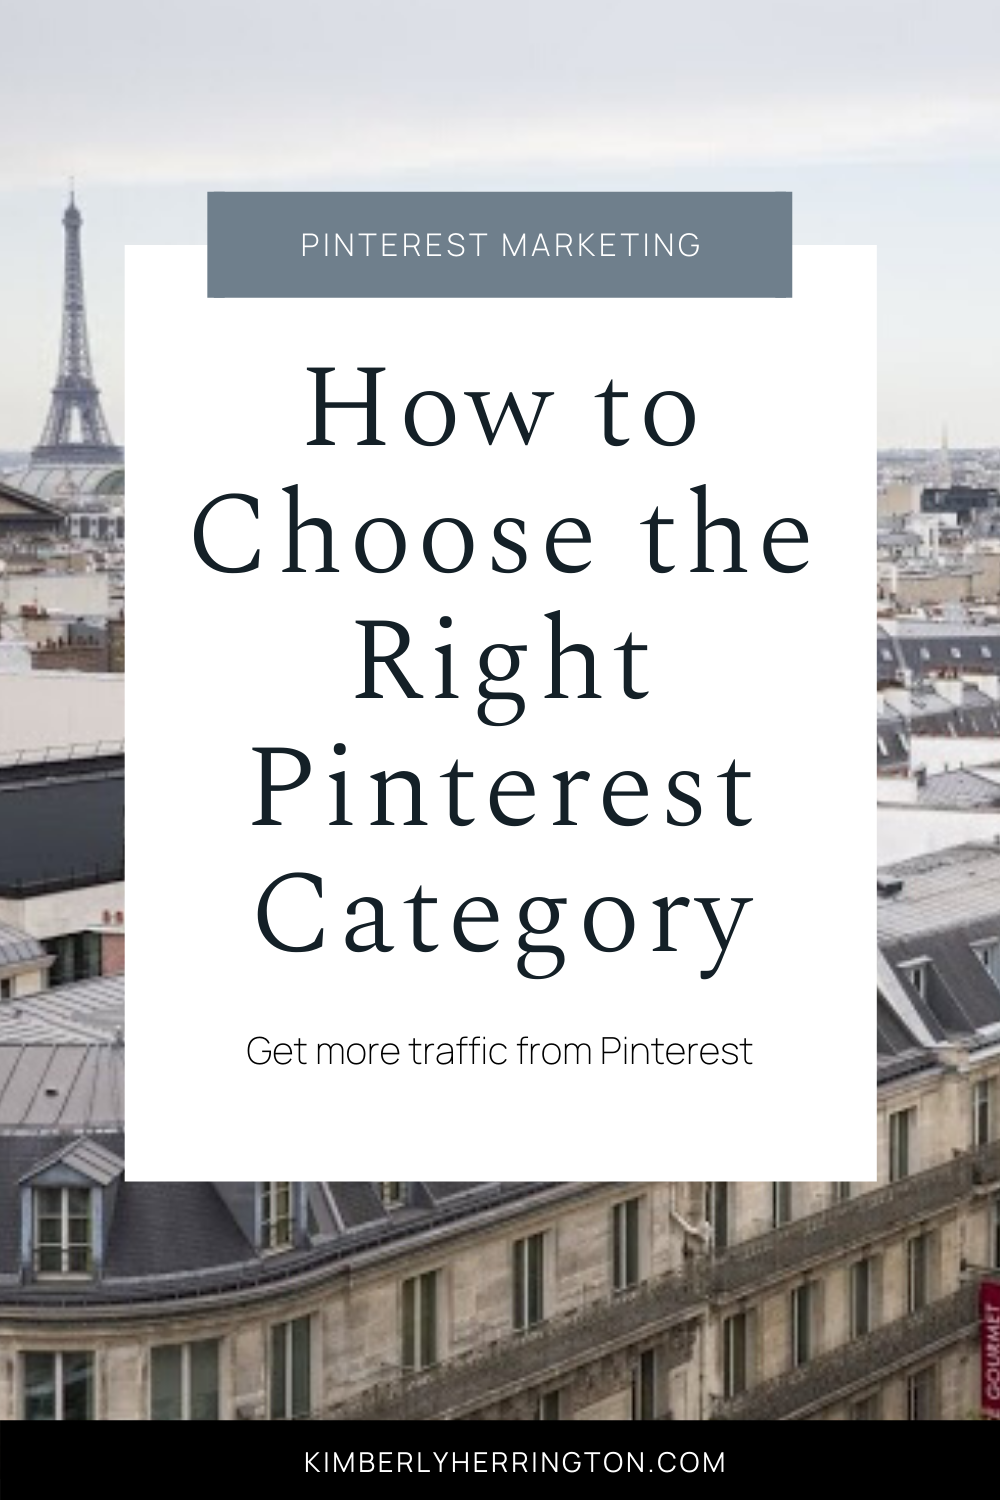 Top Pinterest Categories To Drive Traffic